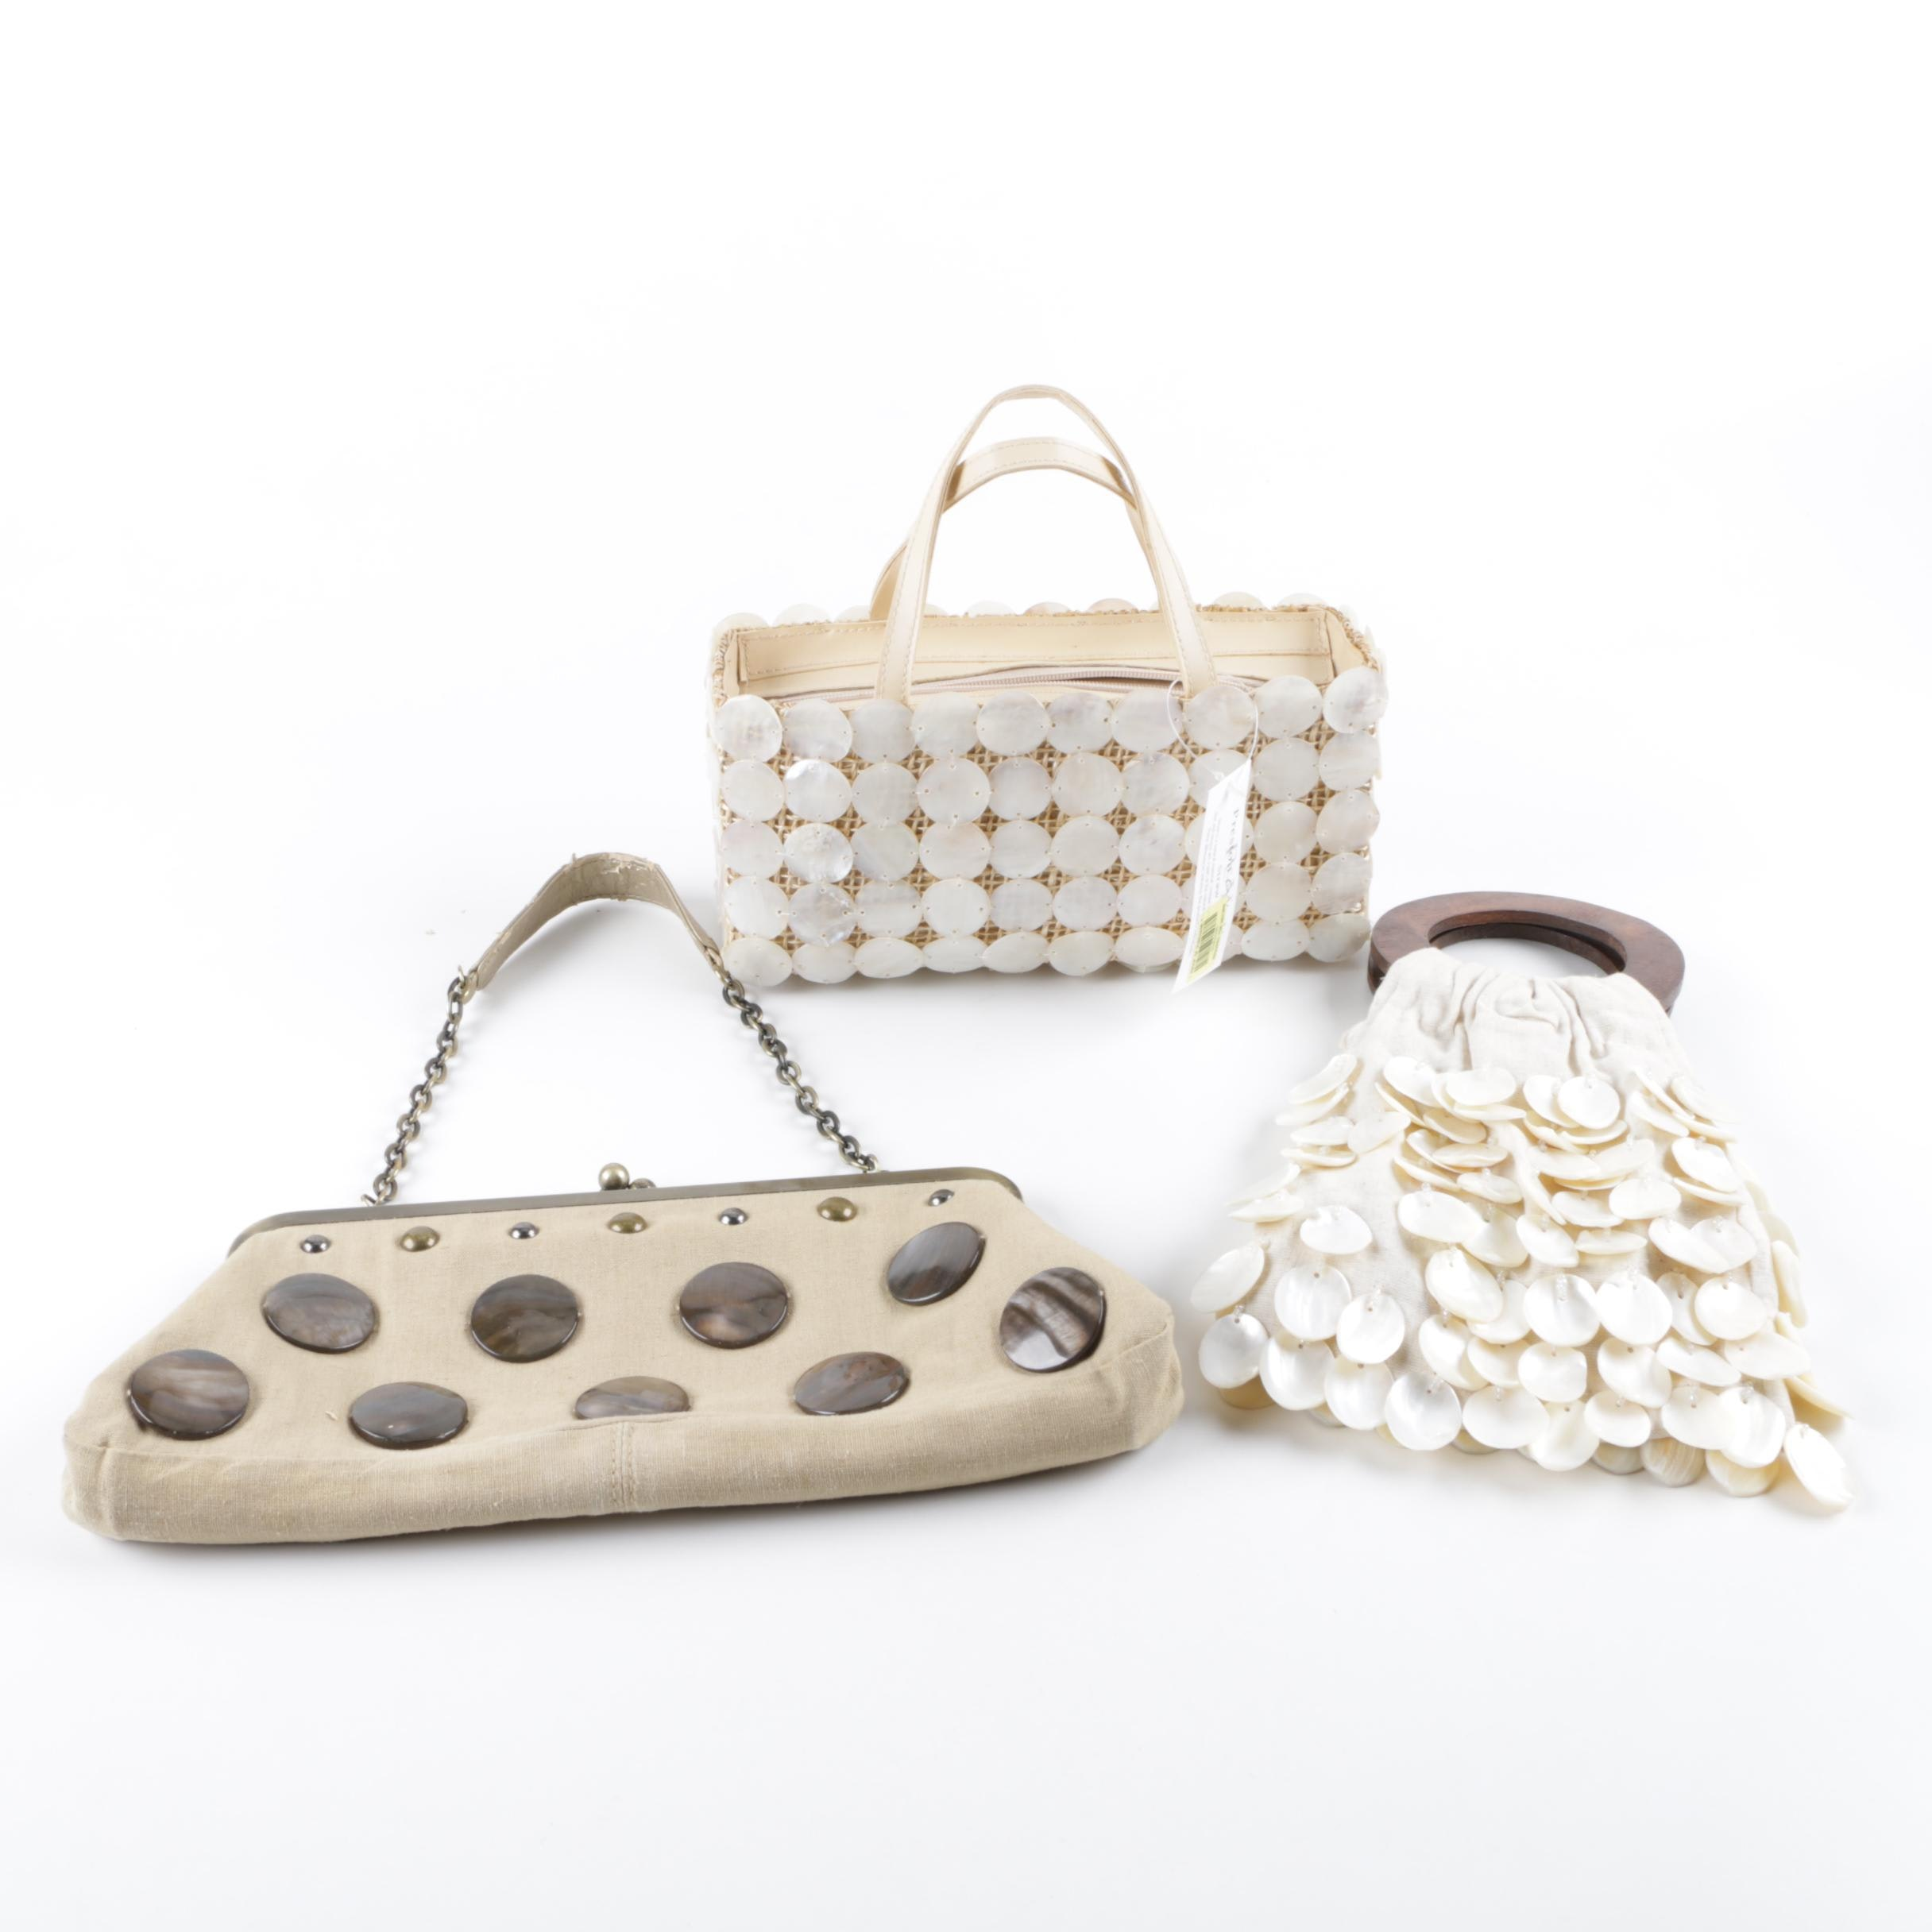 Women's Handbags Featuring Shell Accents